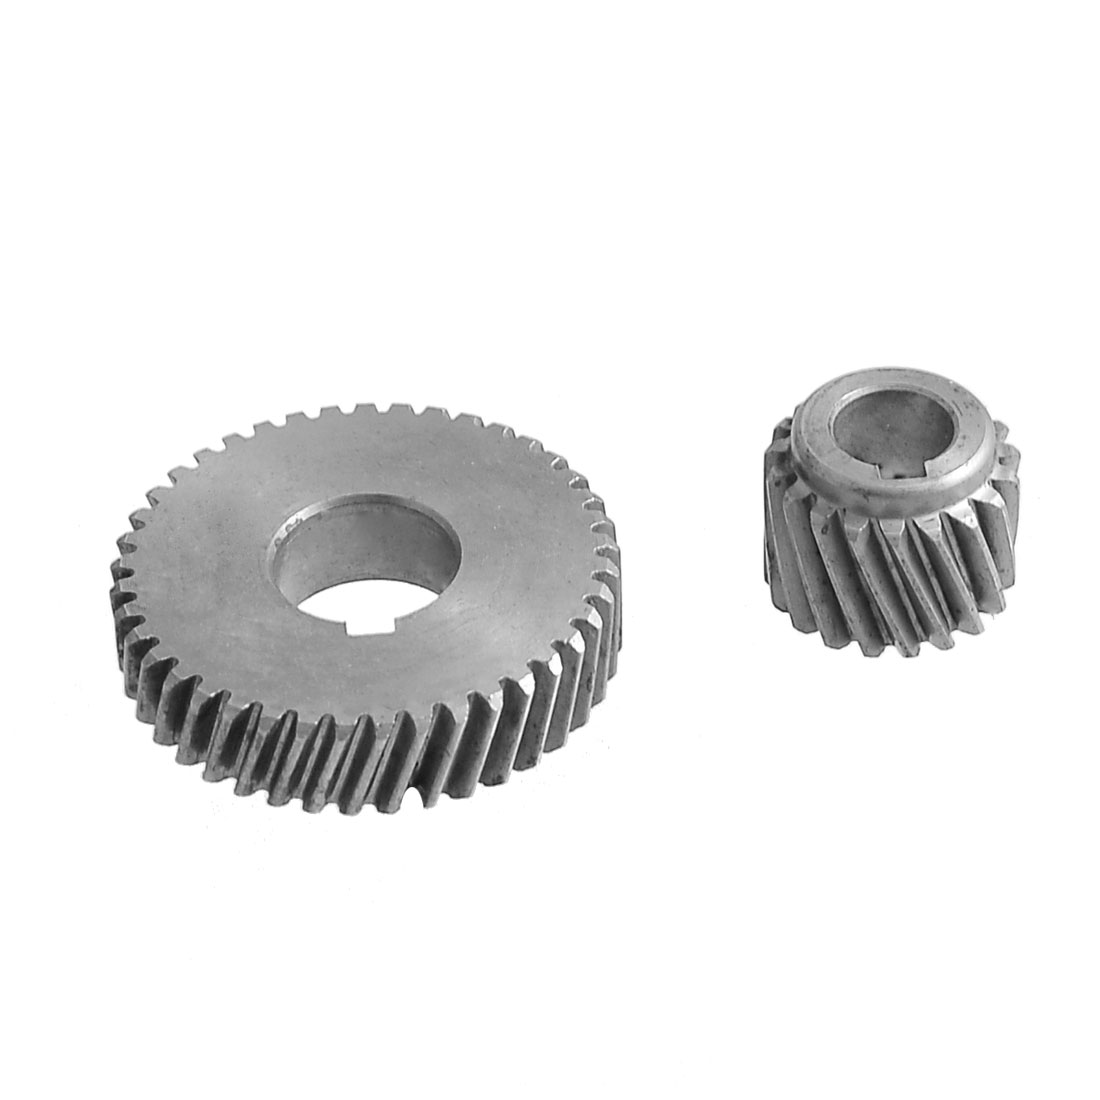 19/41 Ratio Spiral Bevel Gear Pinion Set for Hitachi 110 Cut-off Machine